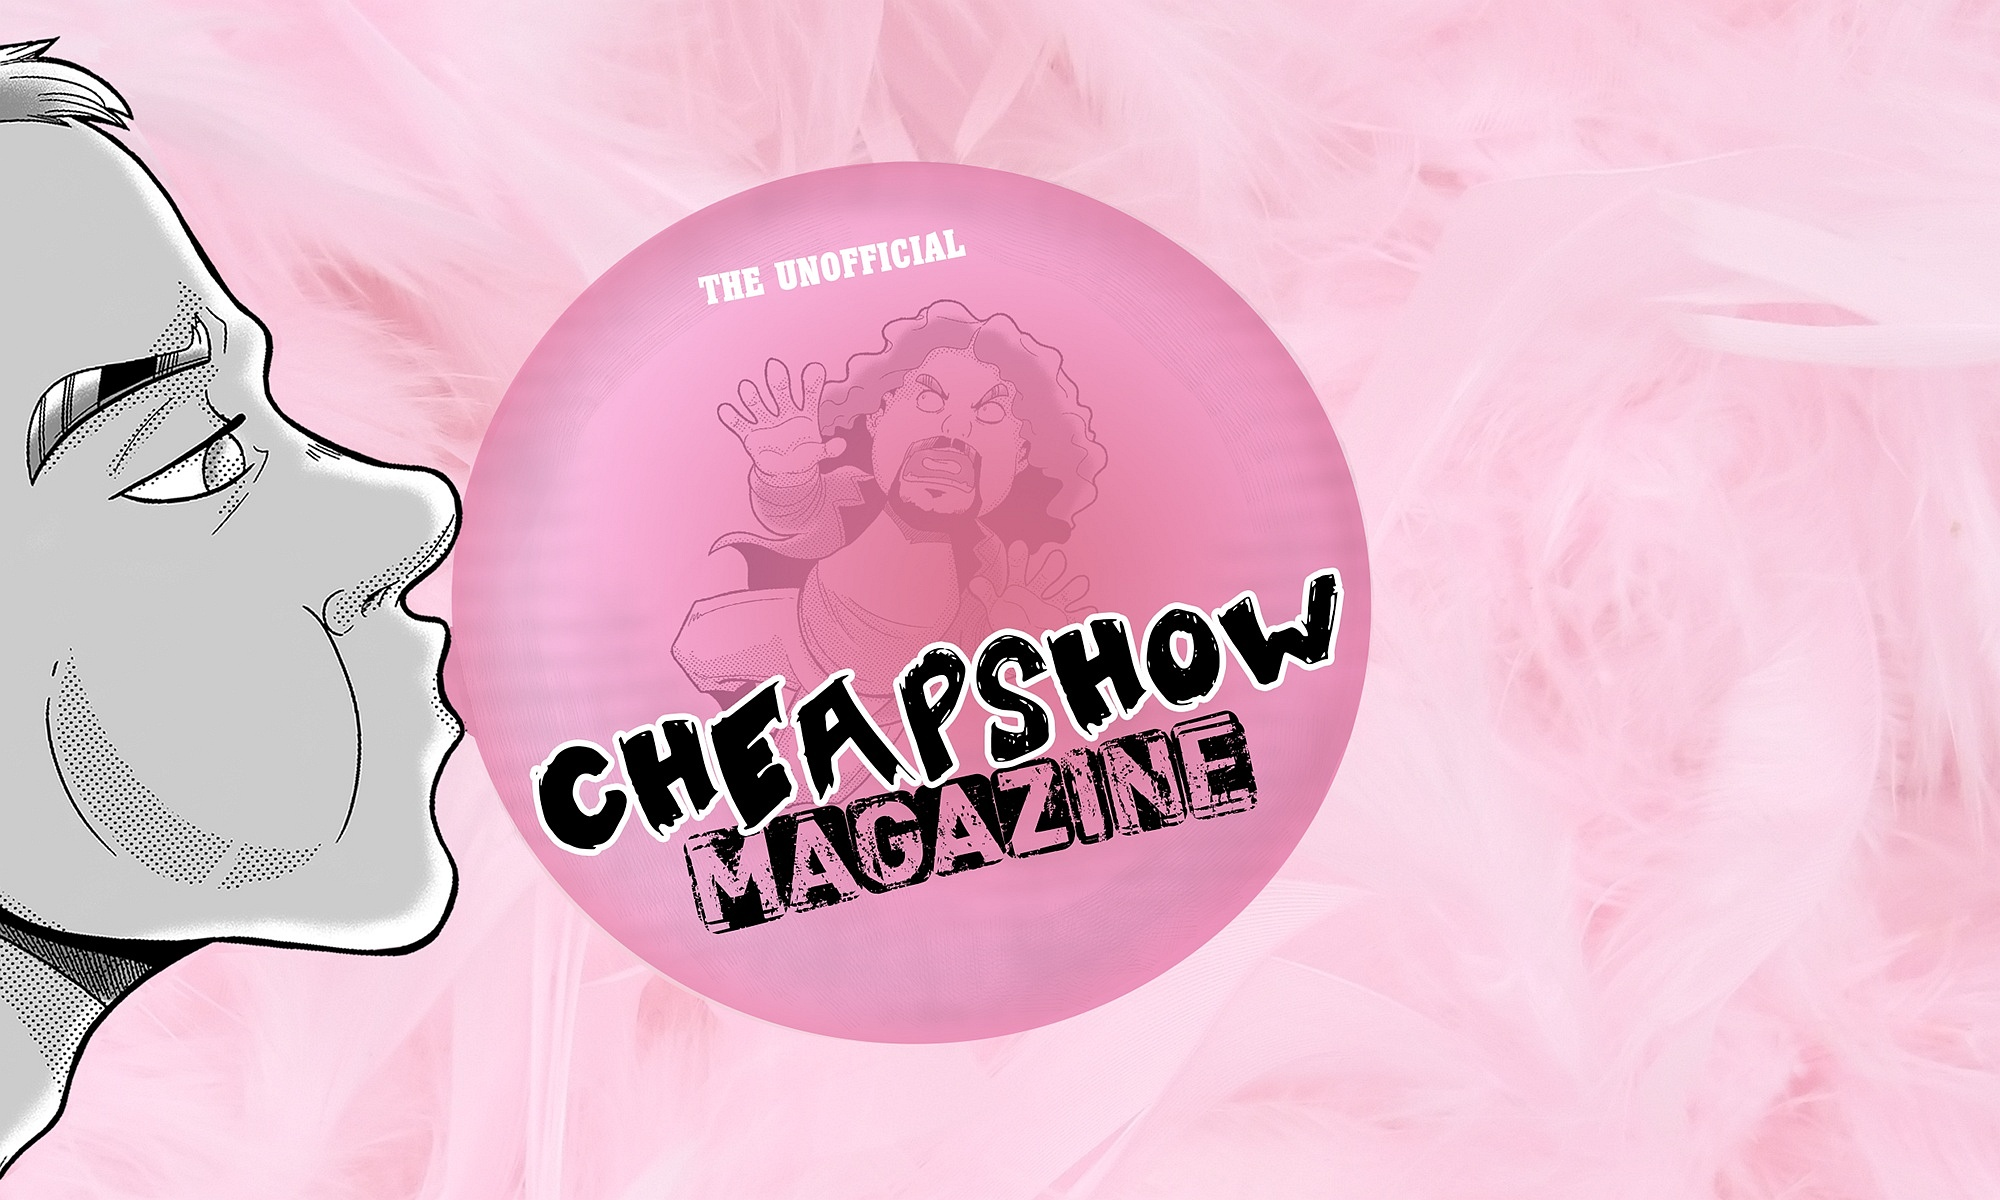 Unofficial CheapShow Magazine